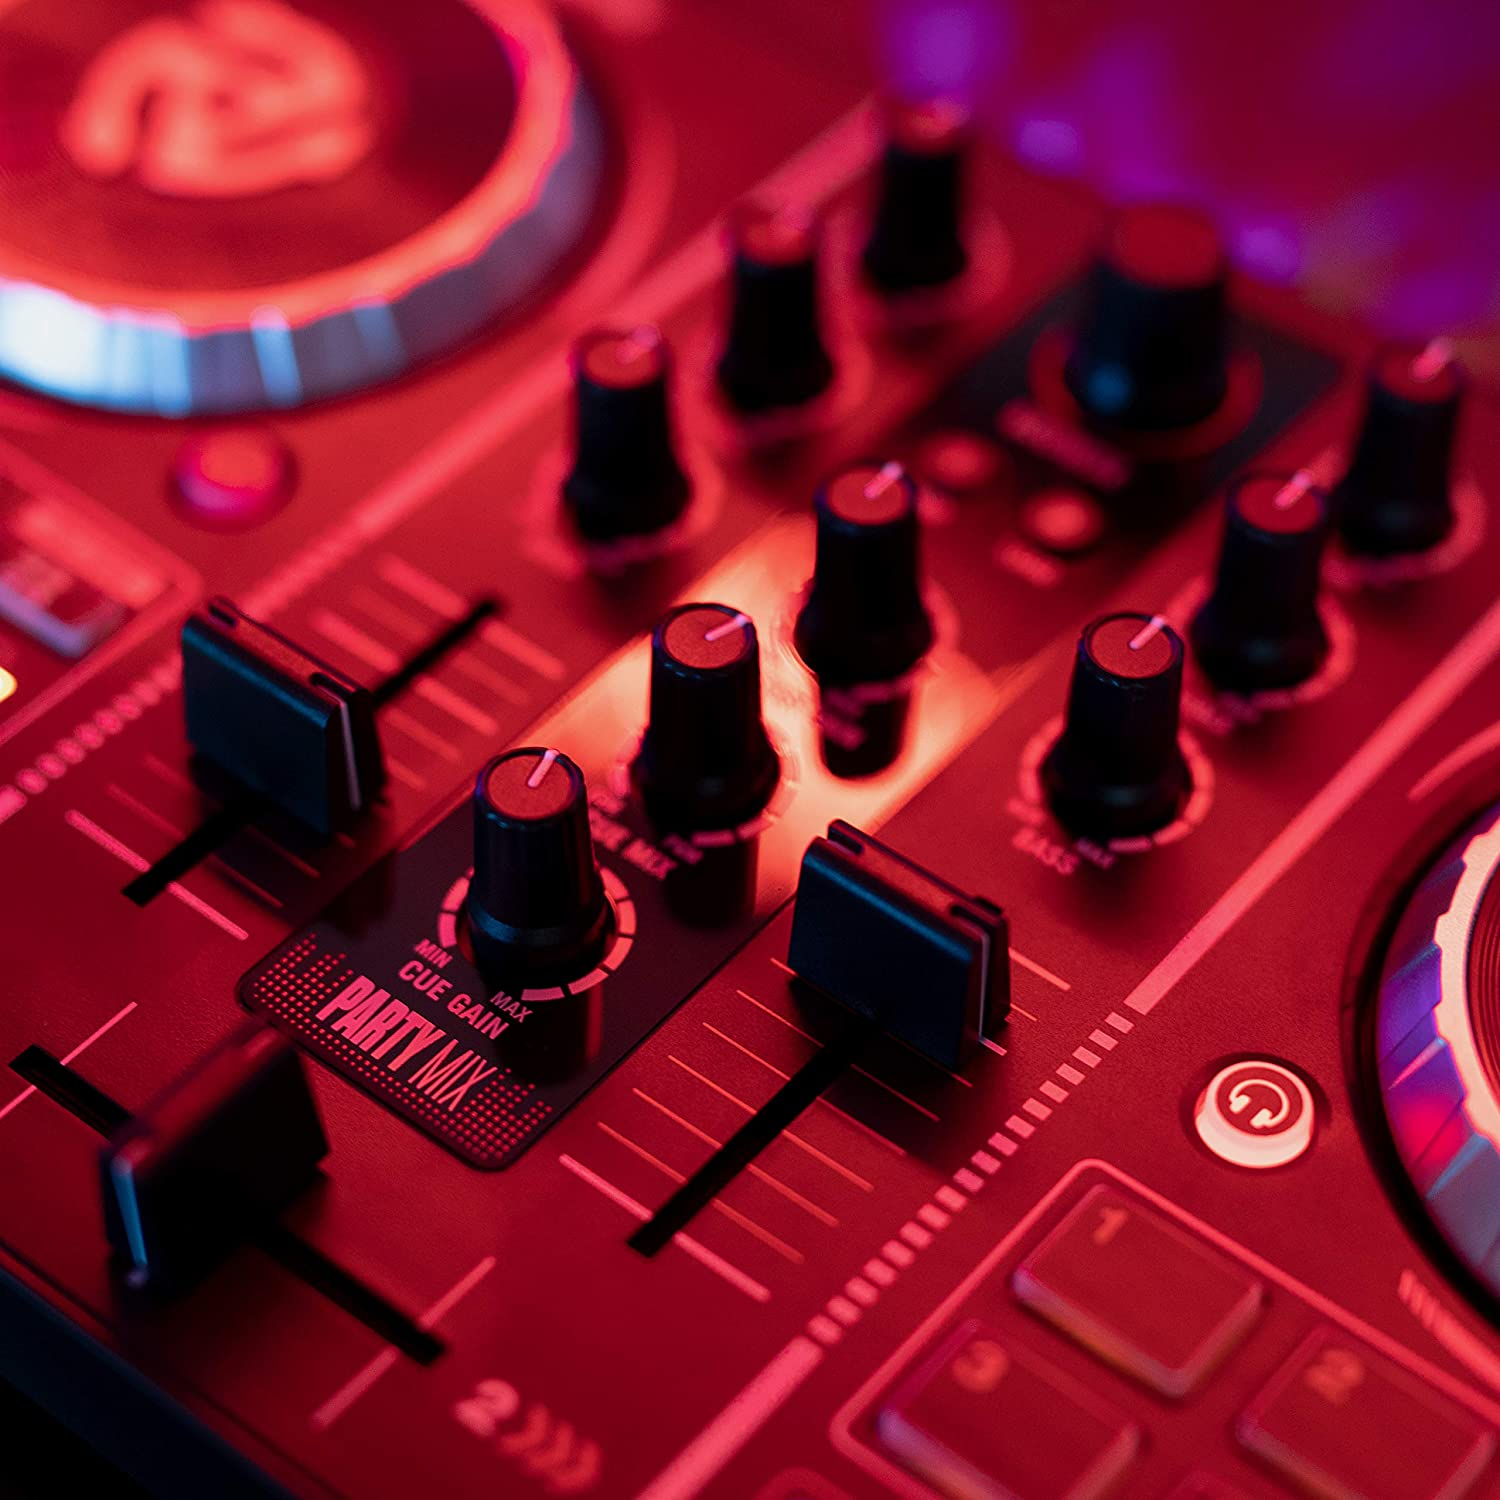 Headphone Output Numark Party Mix Party Lights Performance Pads and Crossfader // Mixer Complete DJ Controller Set for Serato DJ with 2 Decks